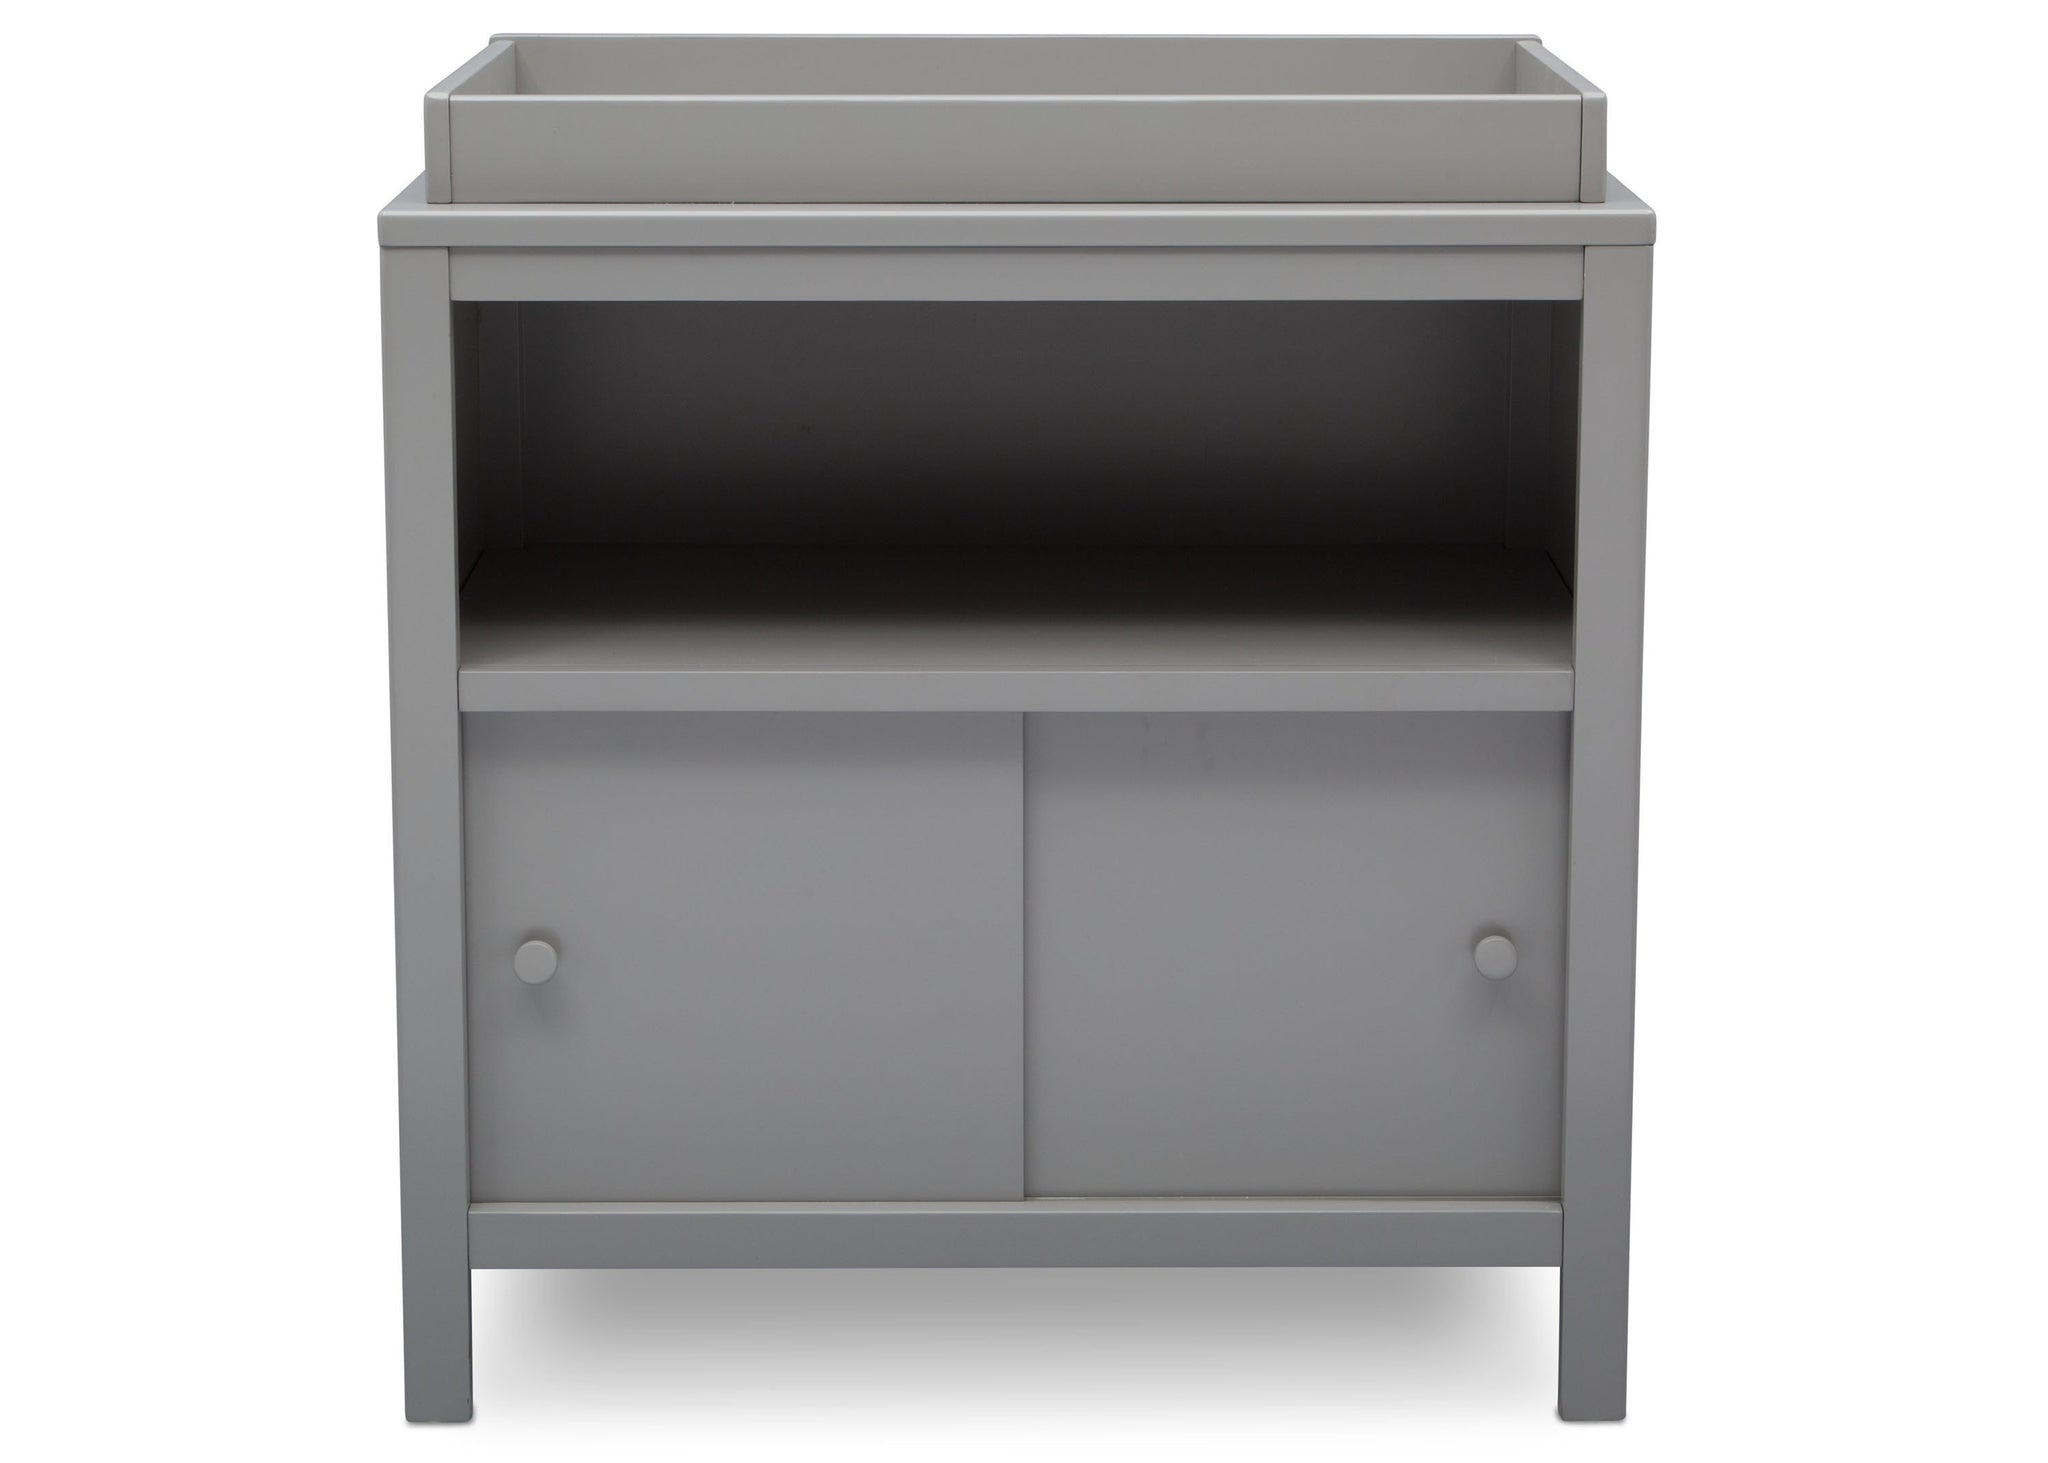 Delta Children Grey (026) Convertible Changing Unit, front view, a3a